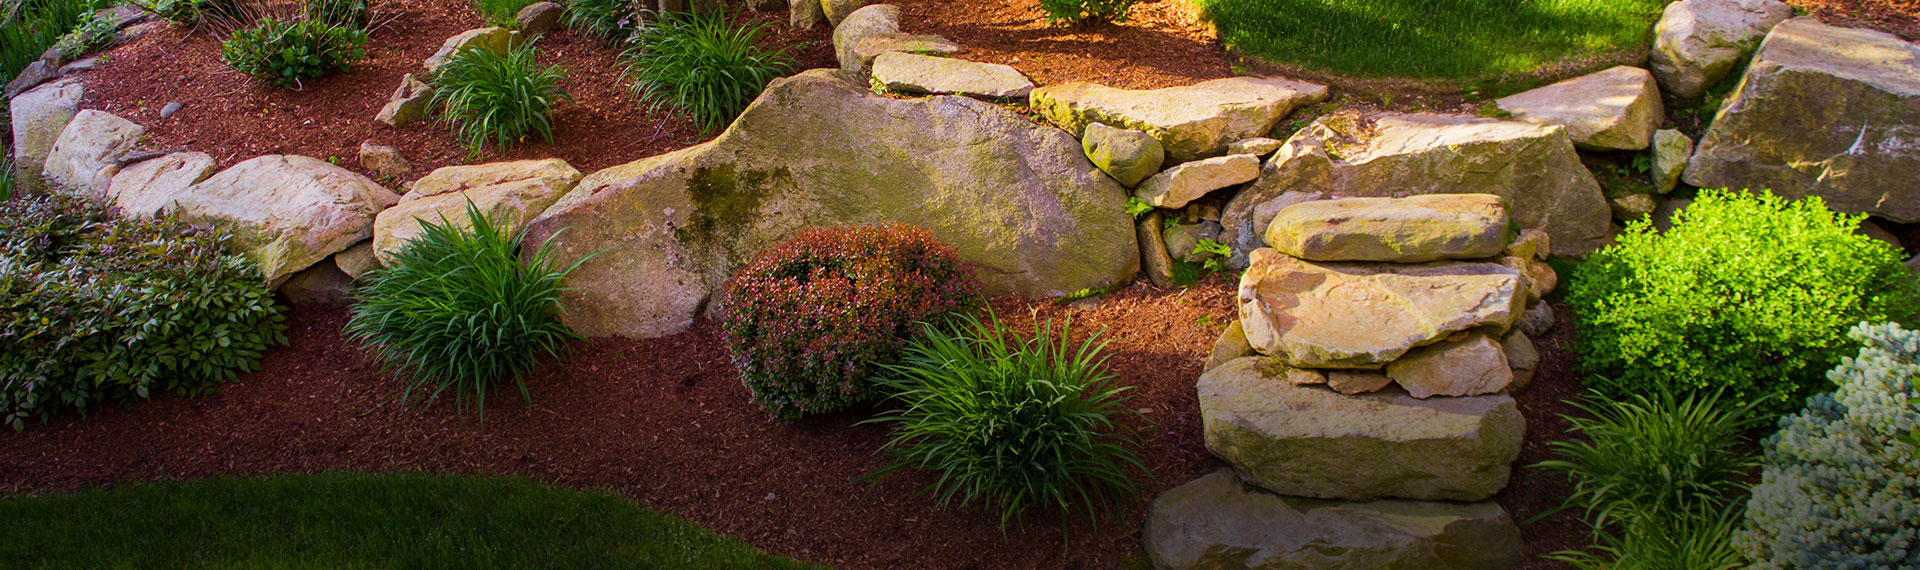 Landscaped flower bed with red mulch